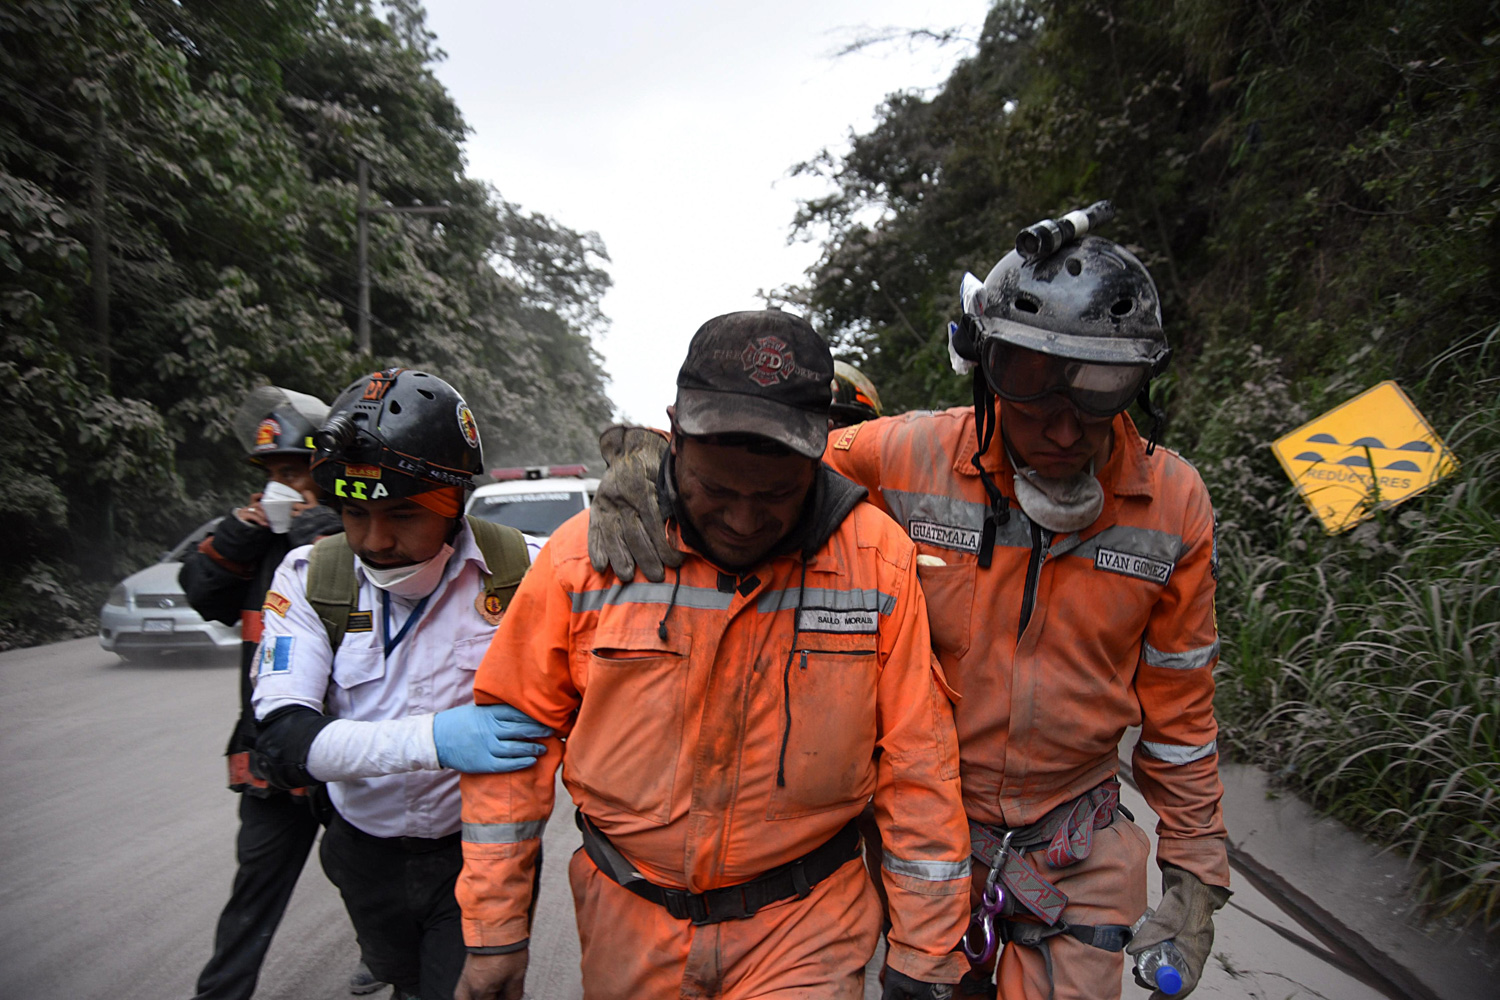 "<div class=""meta image-caption""><div class=""origin-logo origin-image none""><span>none</span></div><span class=""caption-text"">A volunteer firefighter cries after leaving El Rodeo village in Escuintla department, 35 km south of Guatemala City on June 3, 2018, following the eruption of the Fuego Volcano. (ORLANDO ESTRADA/AFP/Getty Images)</span></div>"